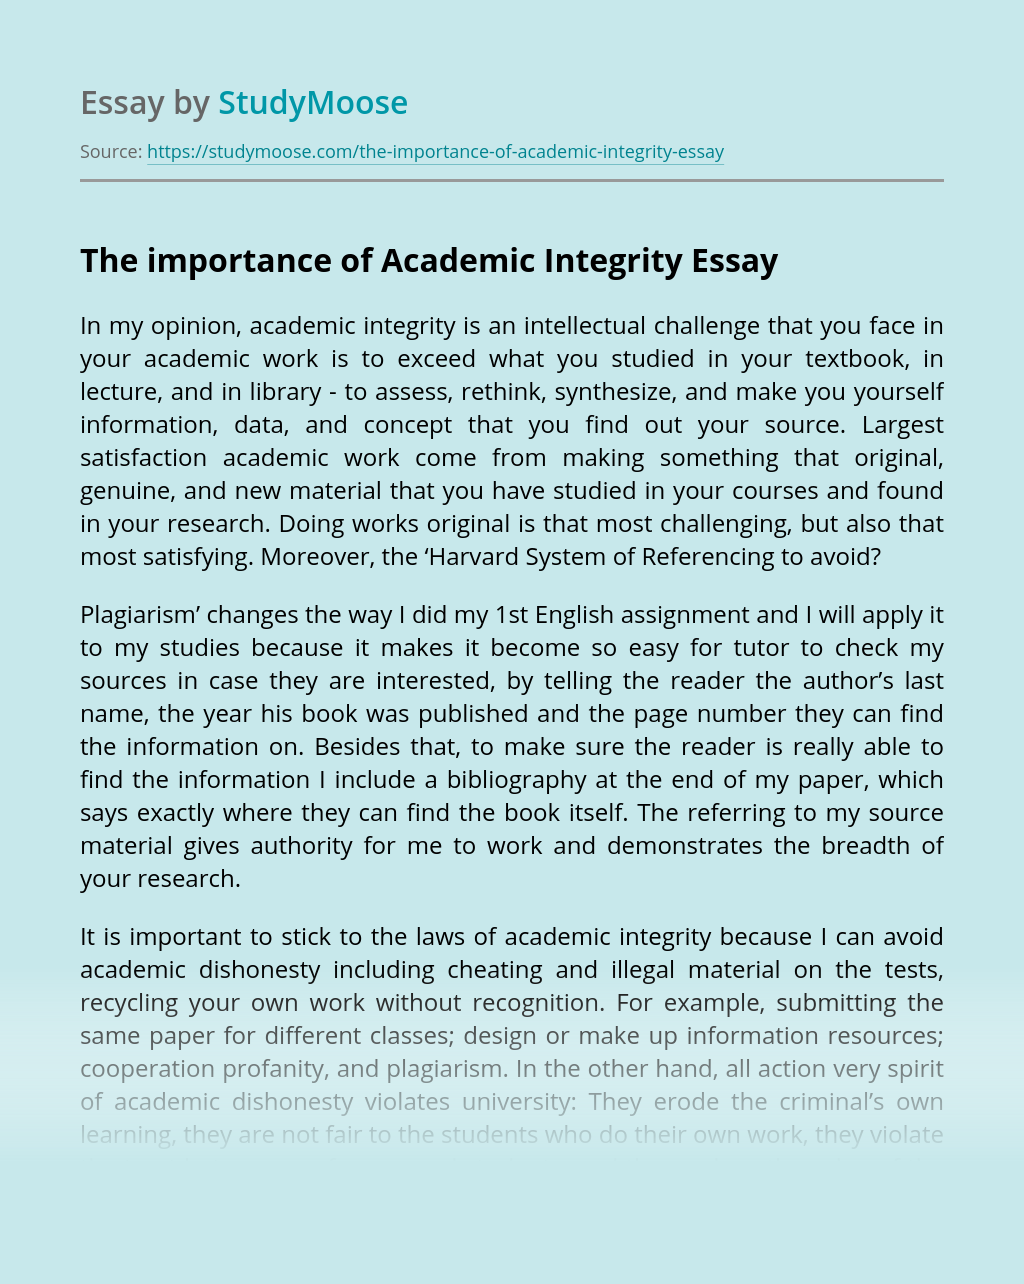 The importance of Academic Integrity